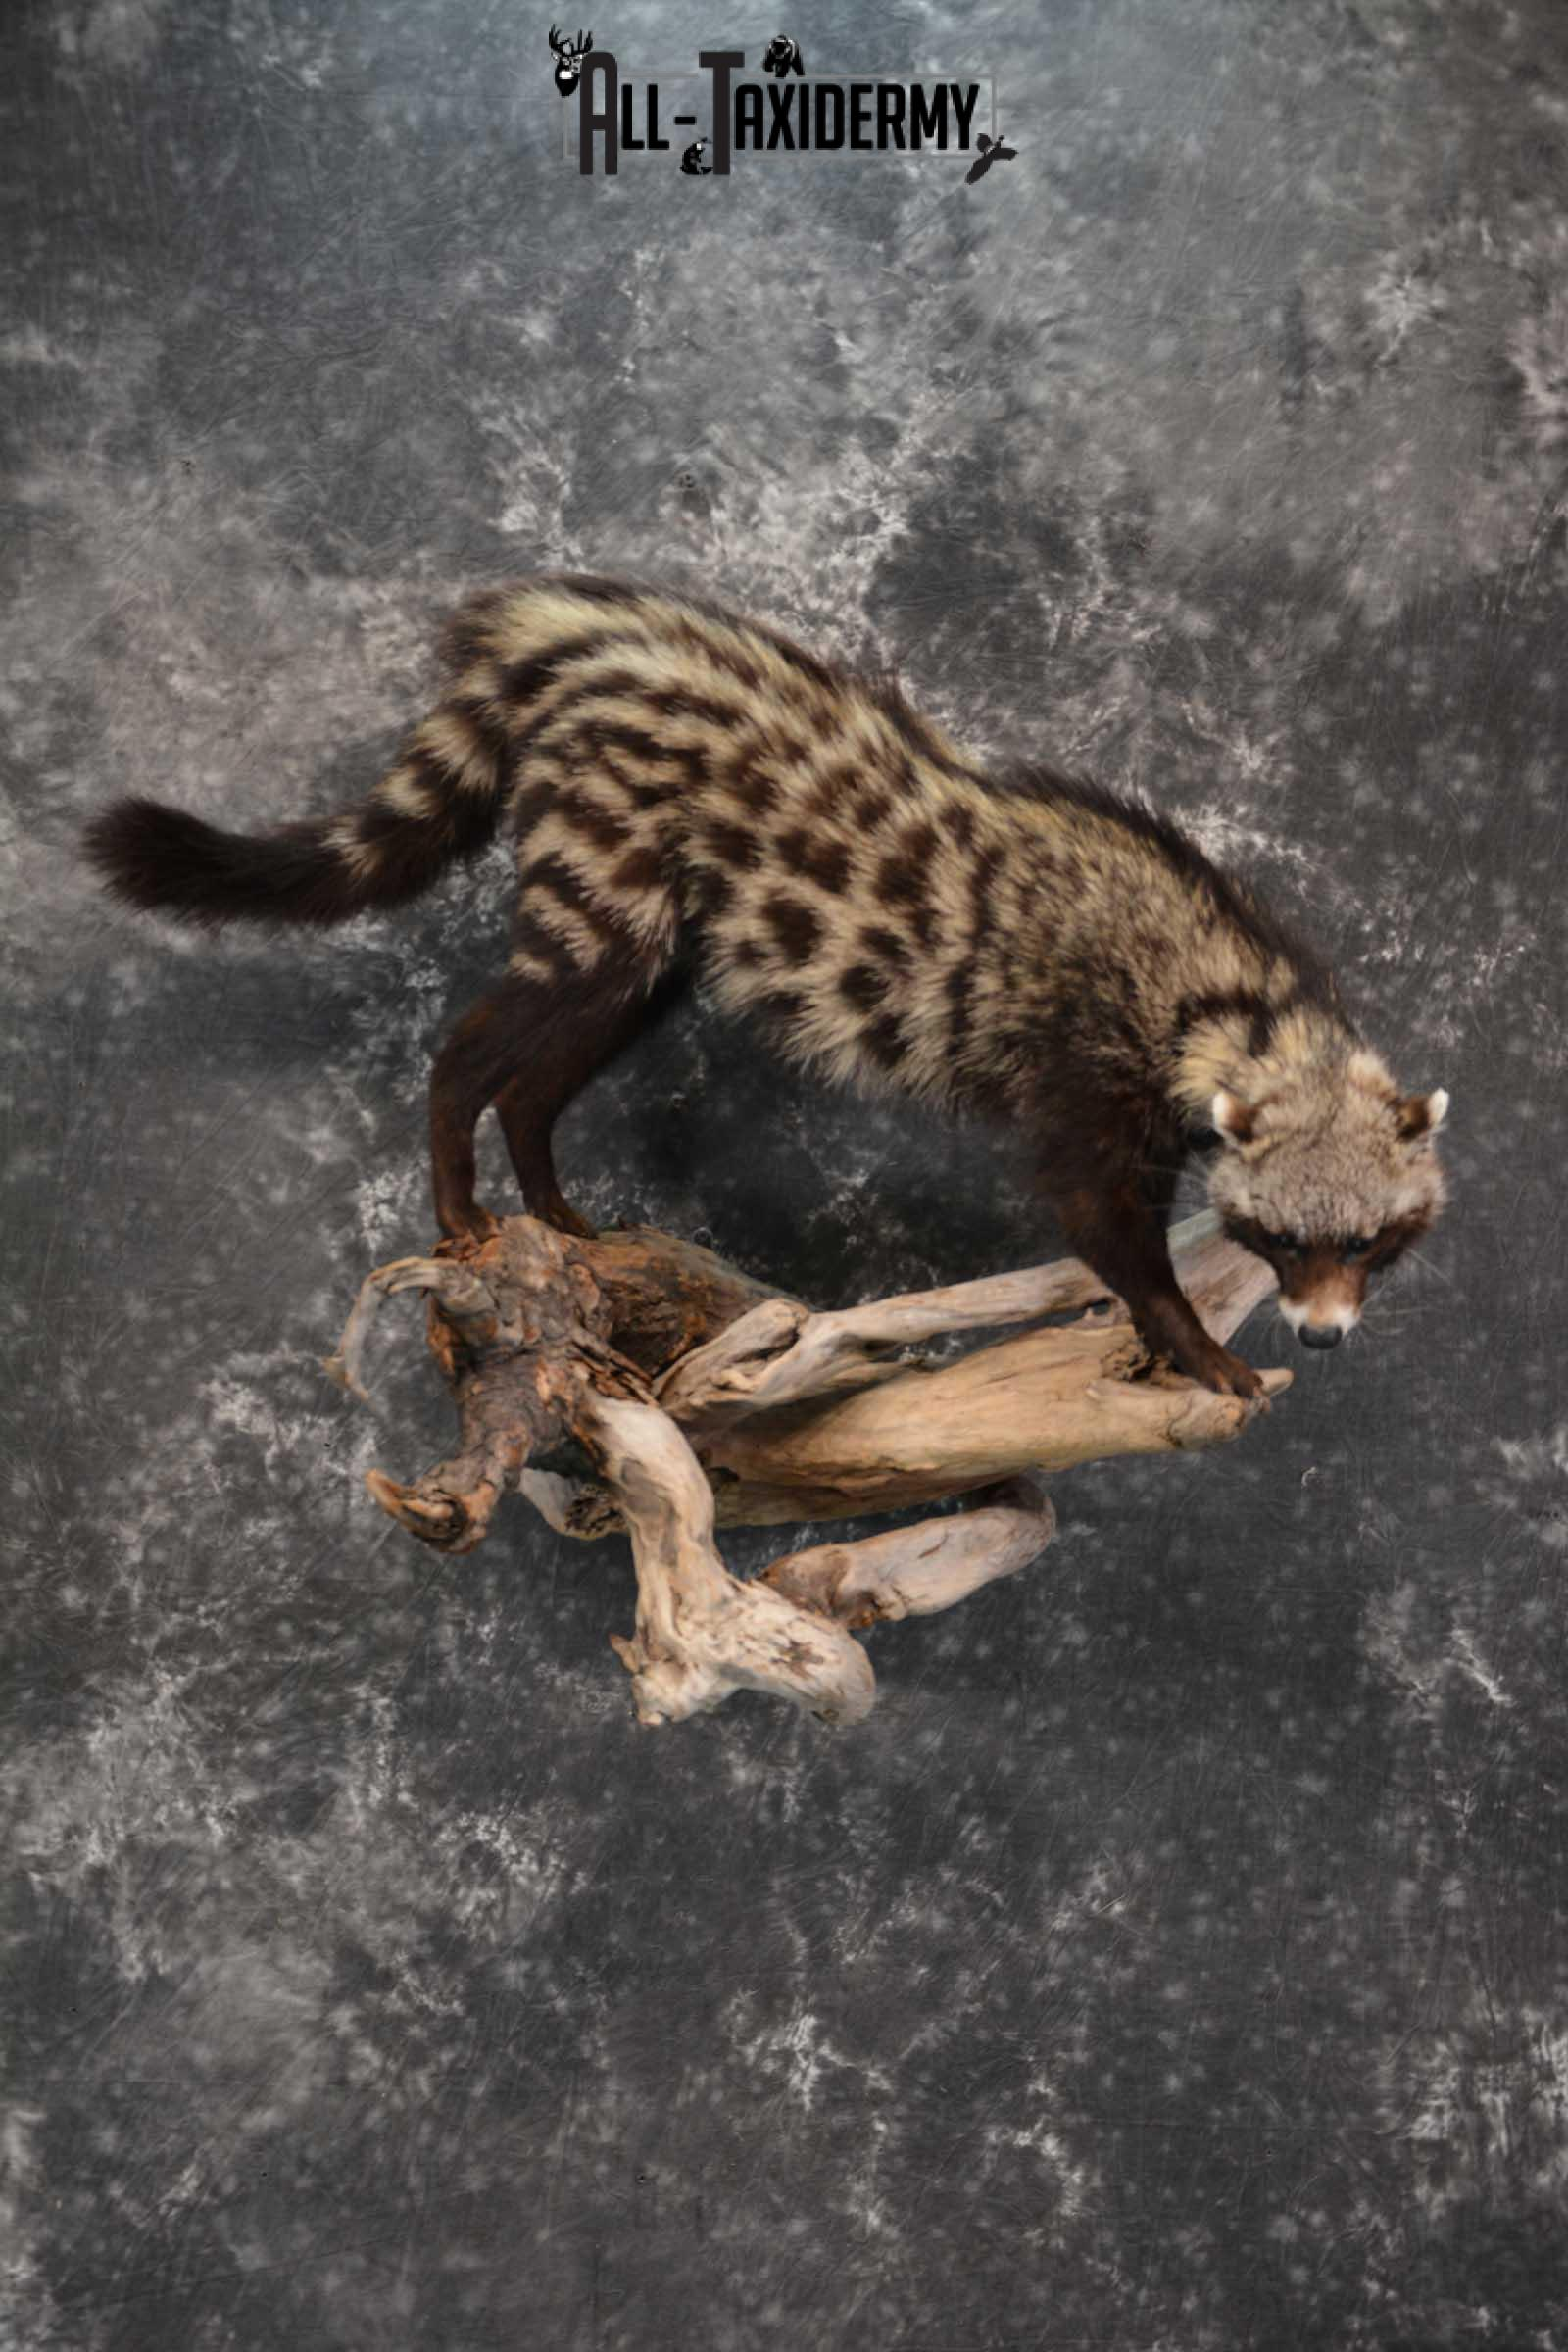 African Civet Cat Taxidermy Mount for sale SKU 1799